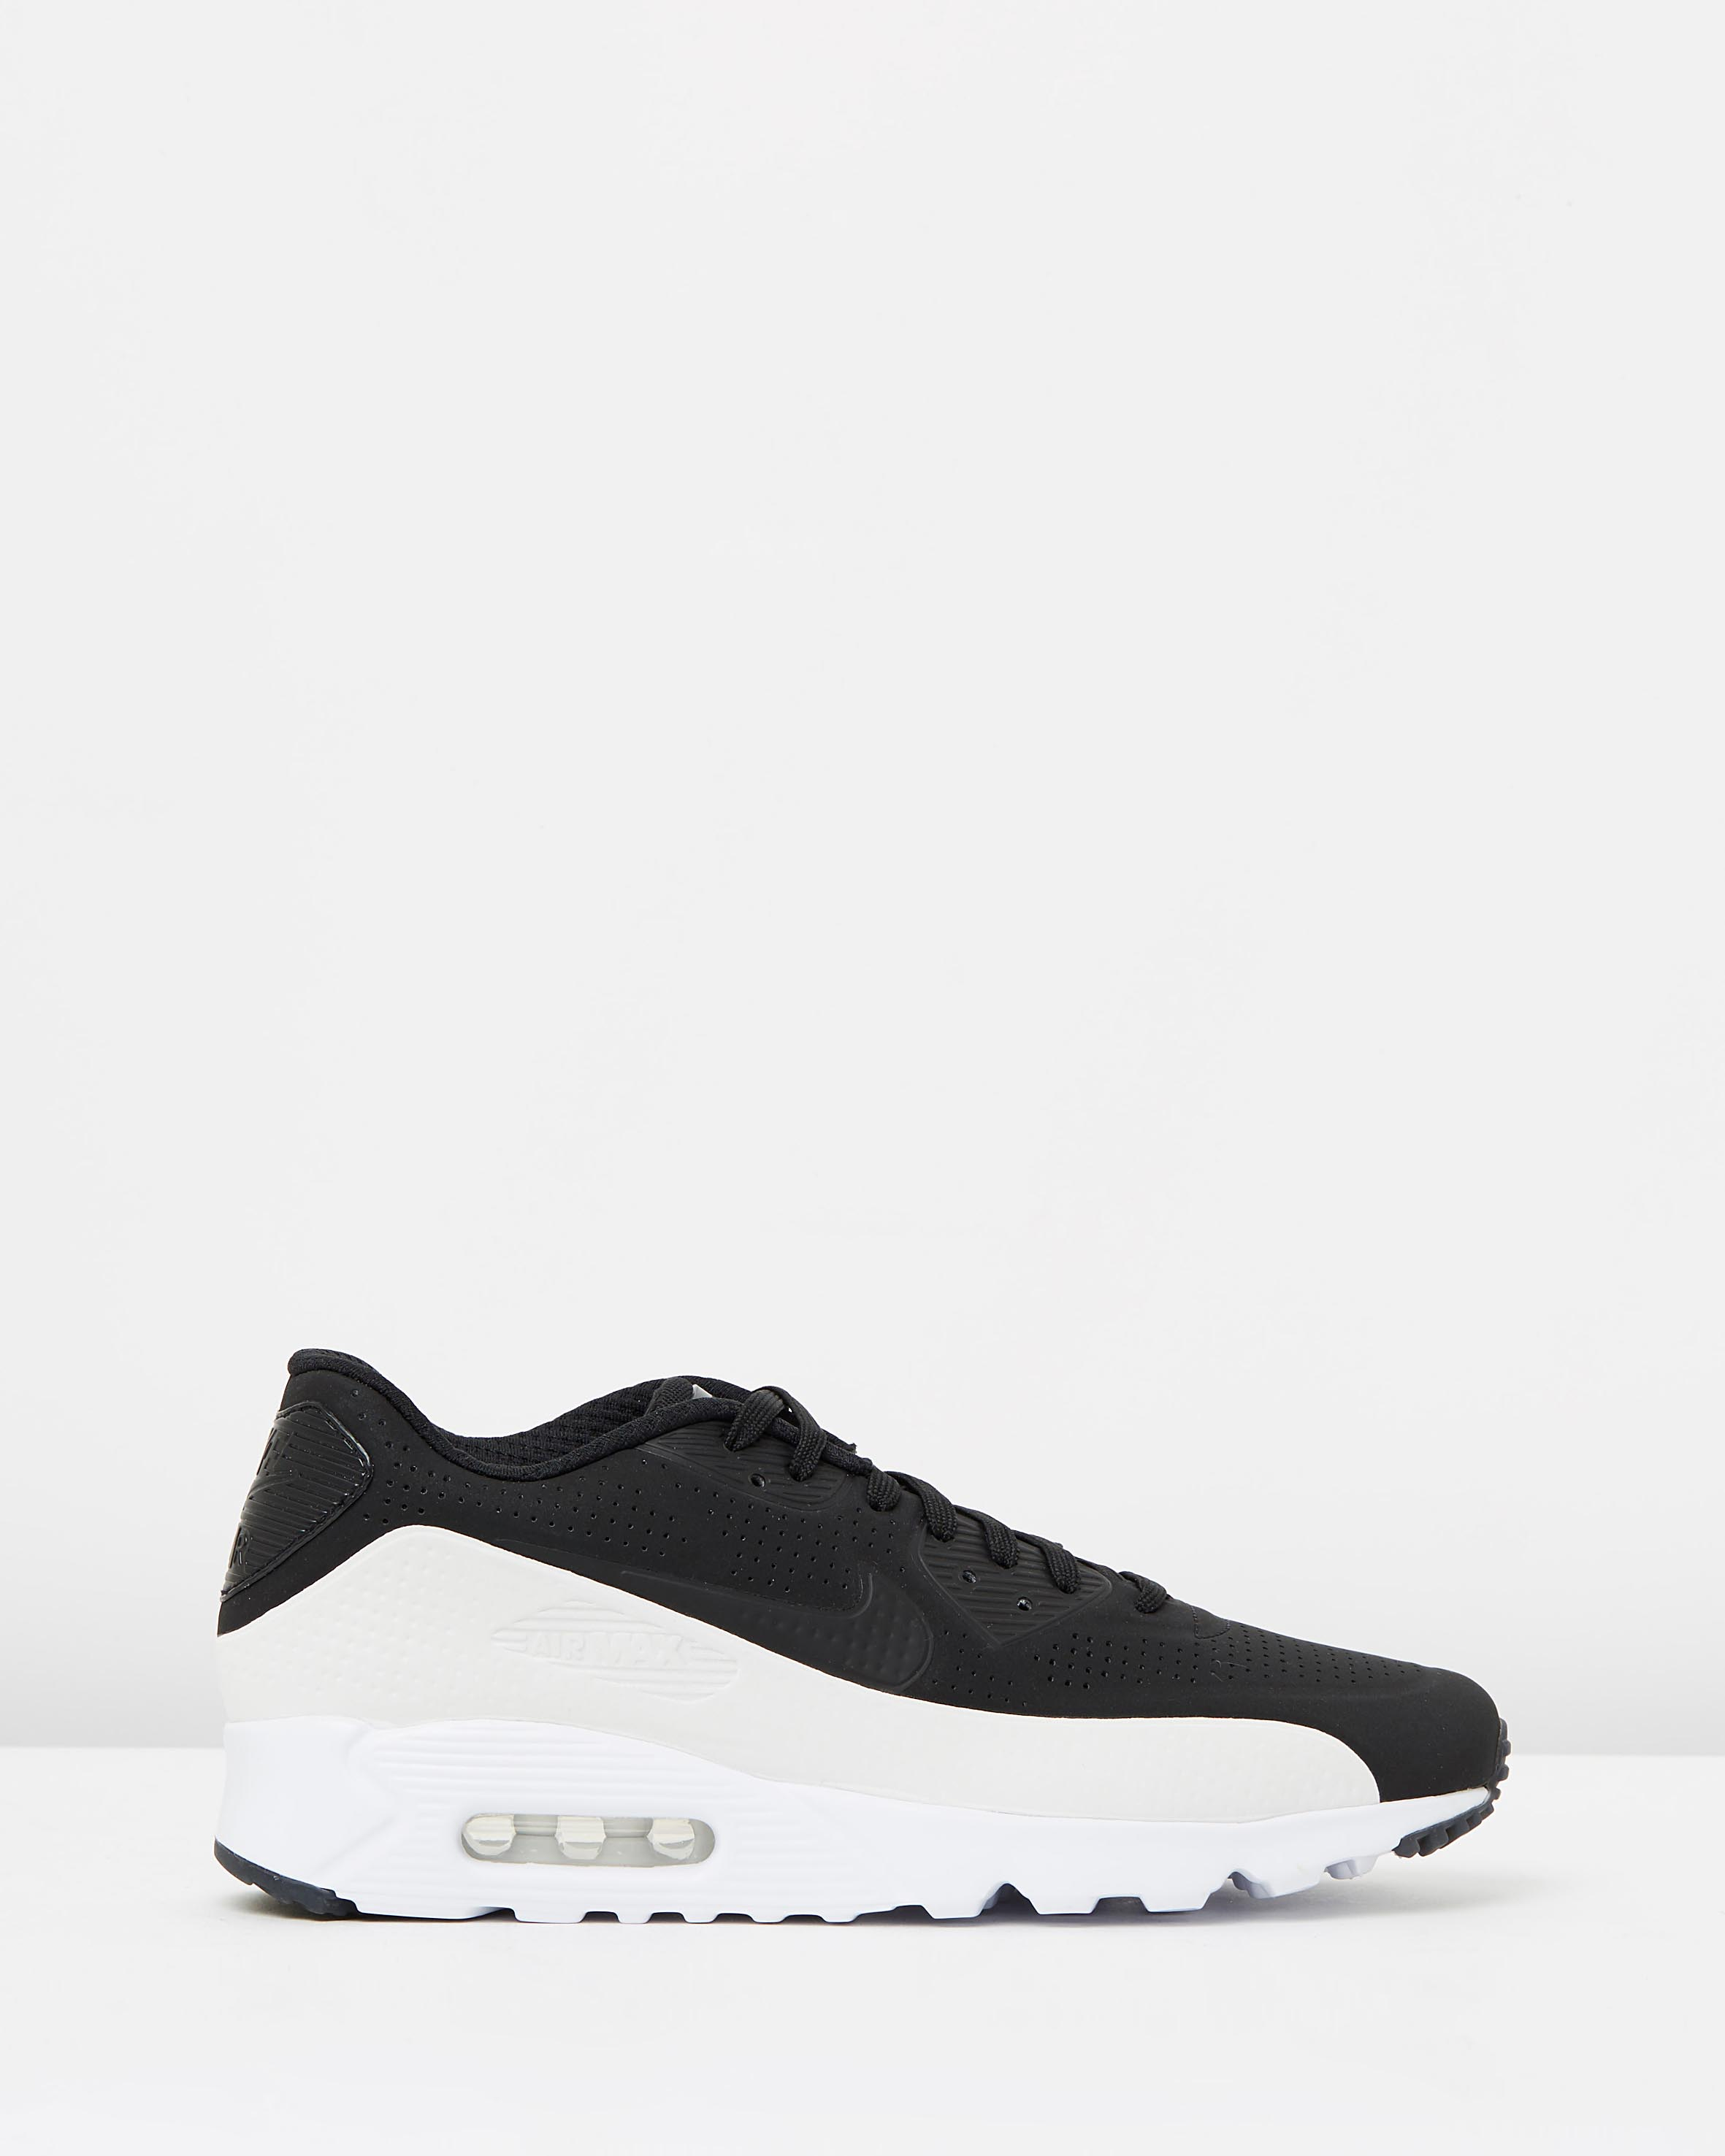 e115c216db97c5 Nike Air Max 90 Ultra Moire Black White 1 ...